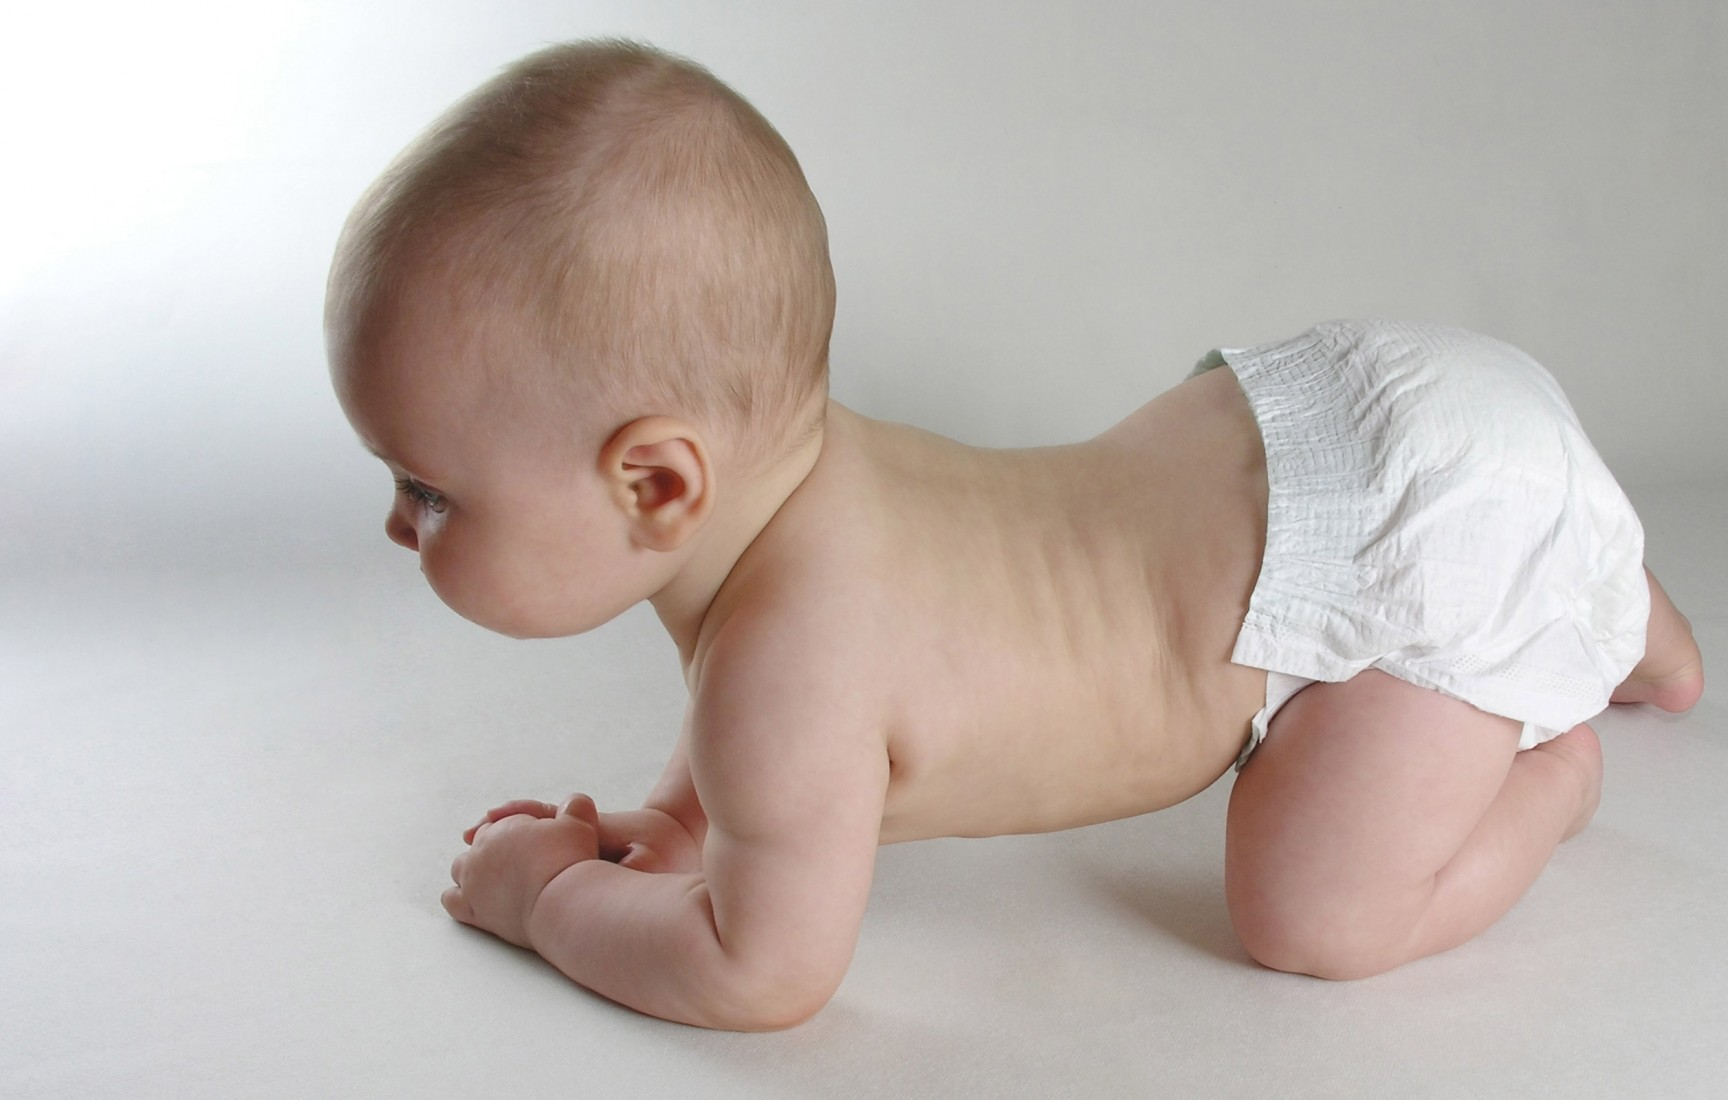 Worried about baby's diaper rashes?